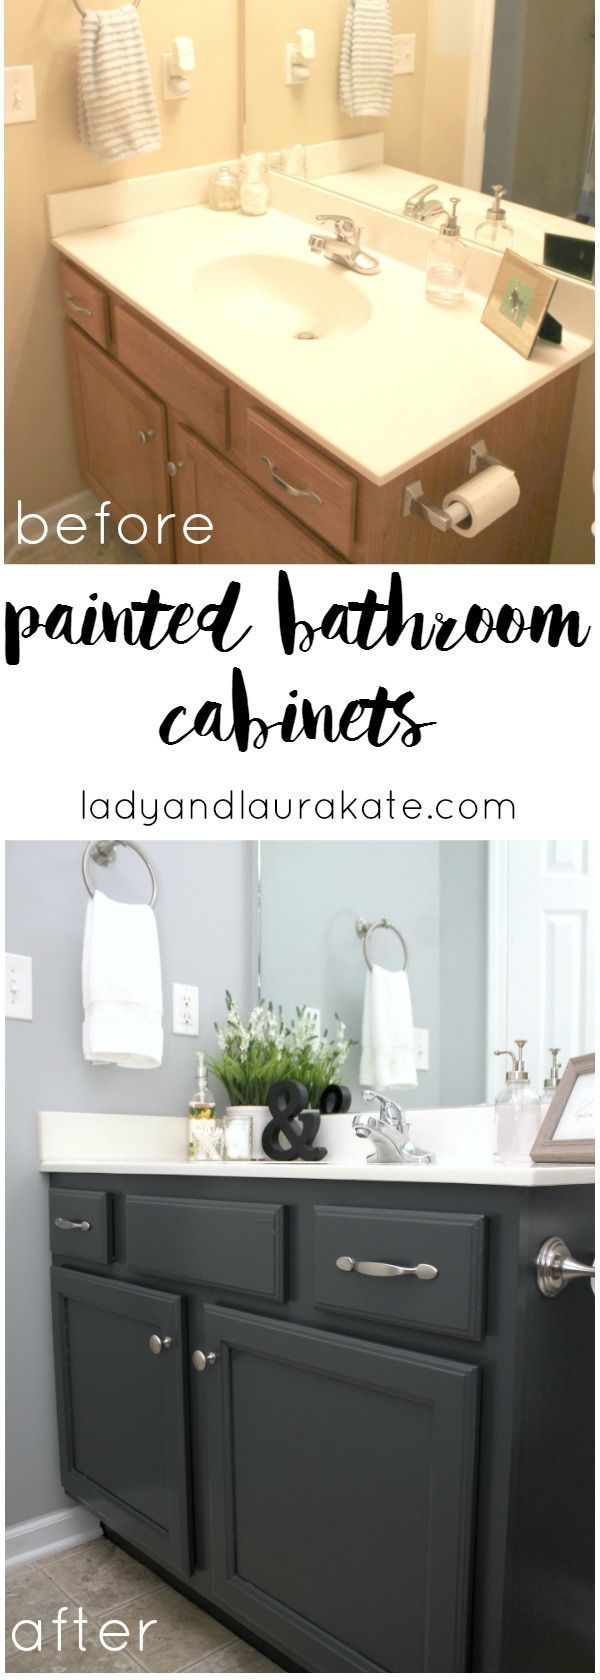 Painting Bathroom Cabinets Black best 25+ painting bathroom cabinets ideas on pinterest | paint